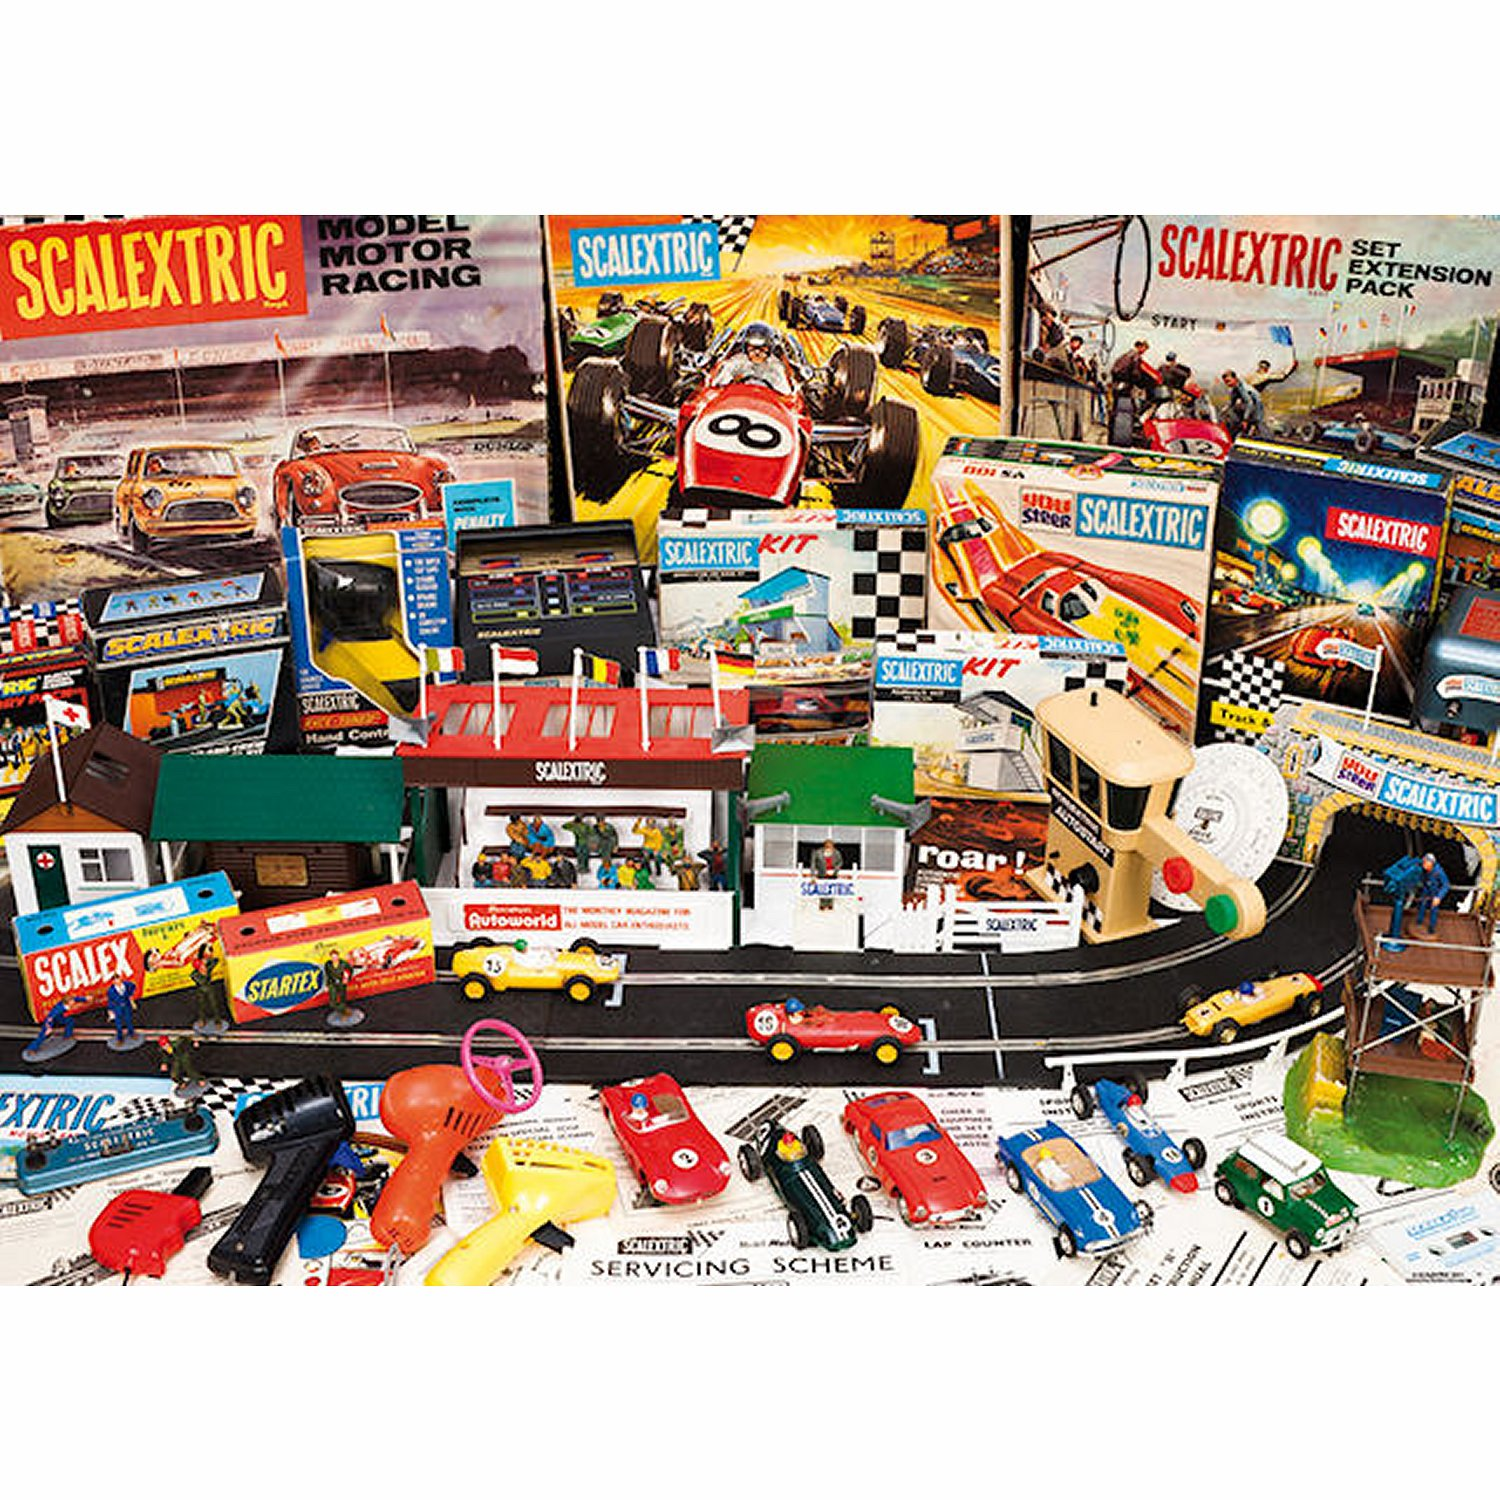 jigsaw puzzle 1000 pieces scalextric gibsonsg7027